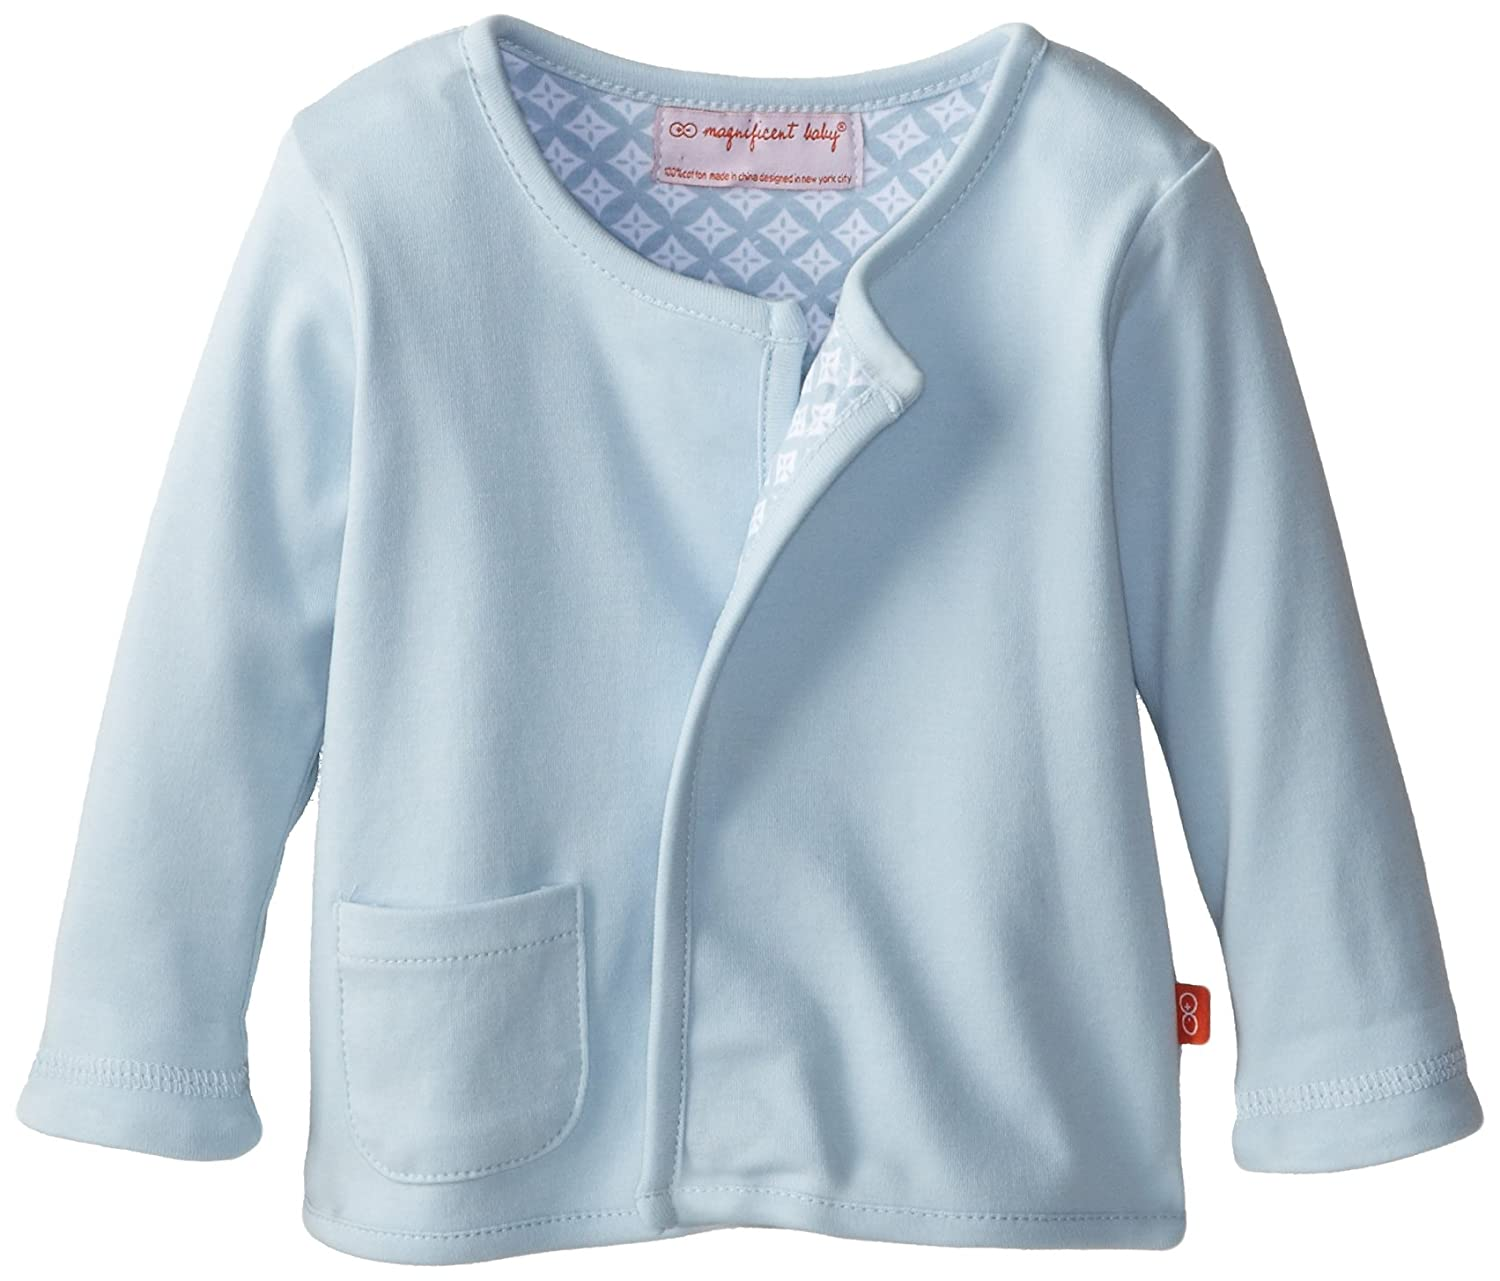 Magnificent Baby Baby-Boys New-Born Reversible Cardigan, White Diamonds, 9 Months 2215-B